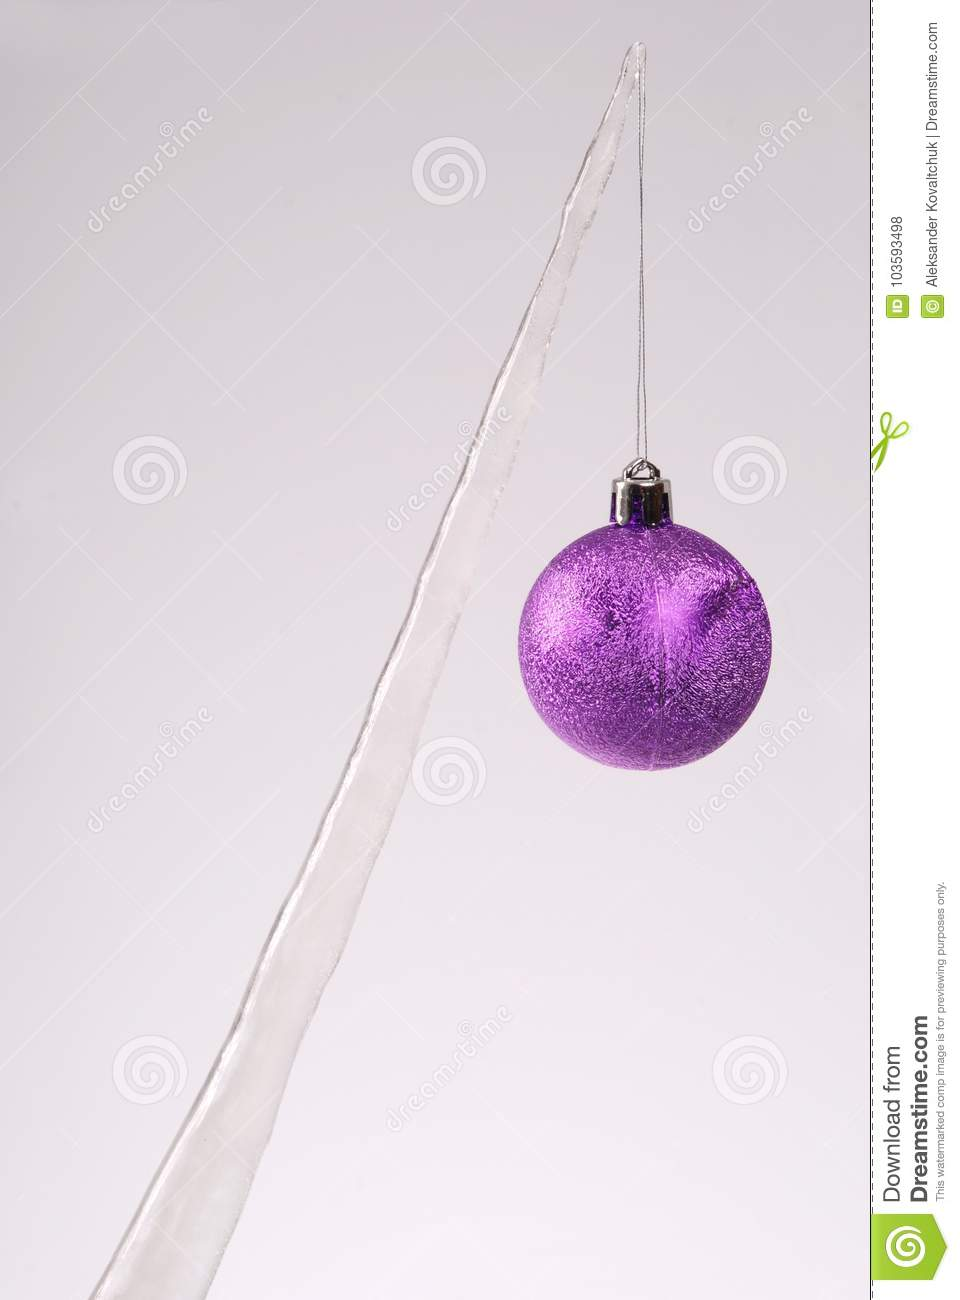 Icicle With A Christmas Tree Toy Stock Photo - Image of bright, melt ...